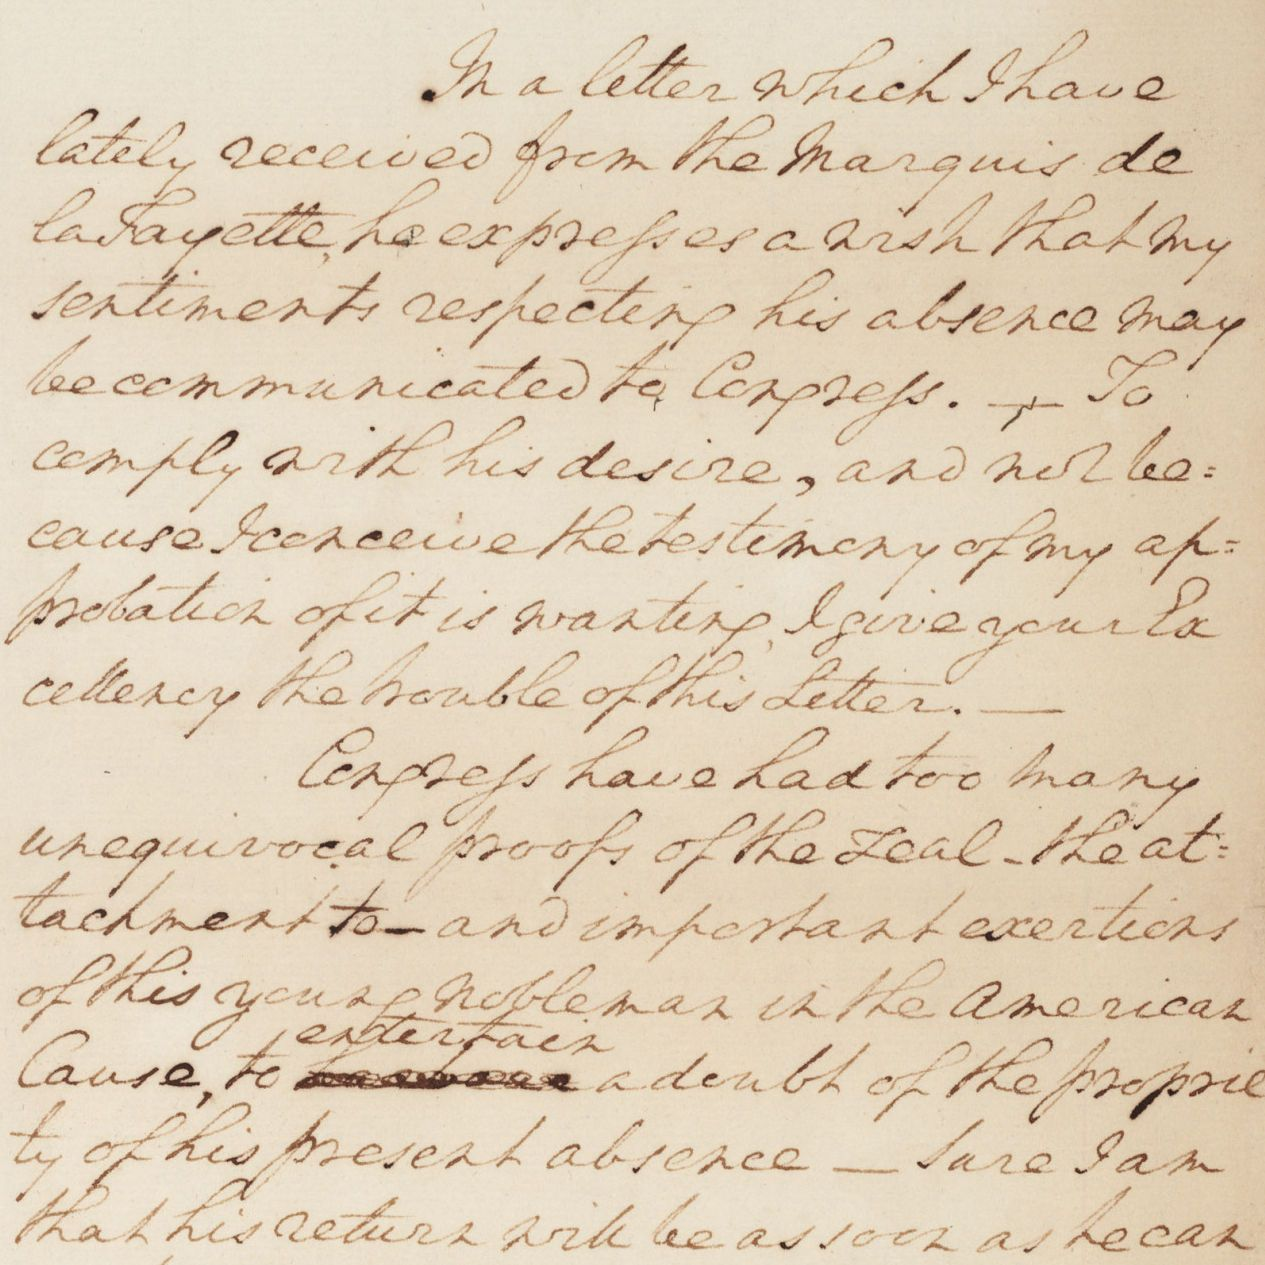 Letter from George Washington to the President of Congress